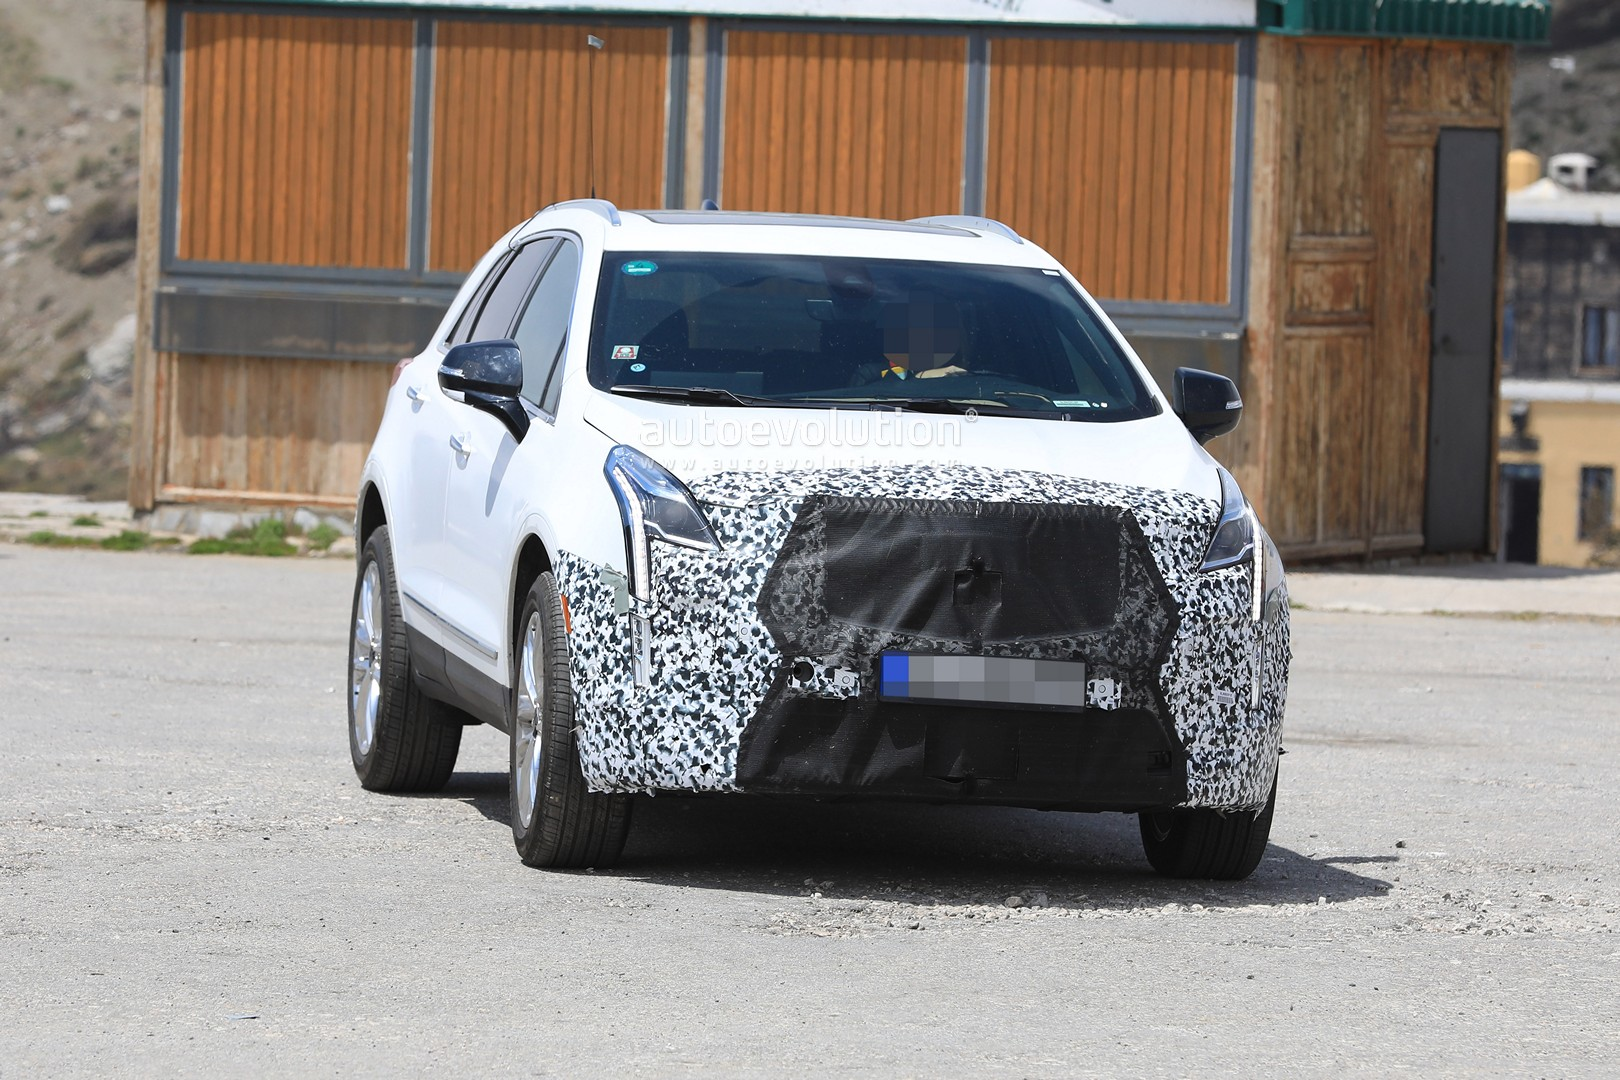 Spyshots 2020 Cadillac Xt5 Facelift Prototype Caught In Europe